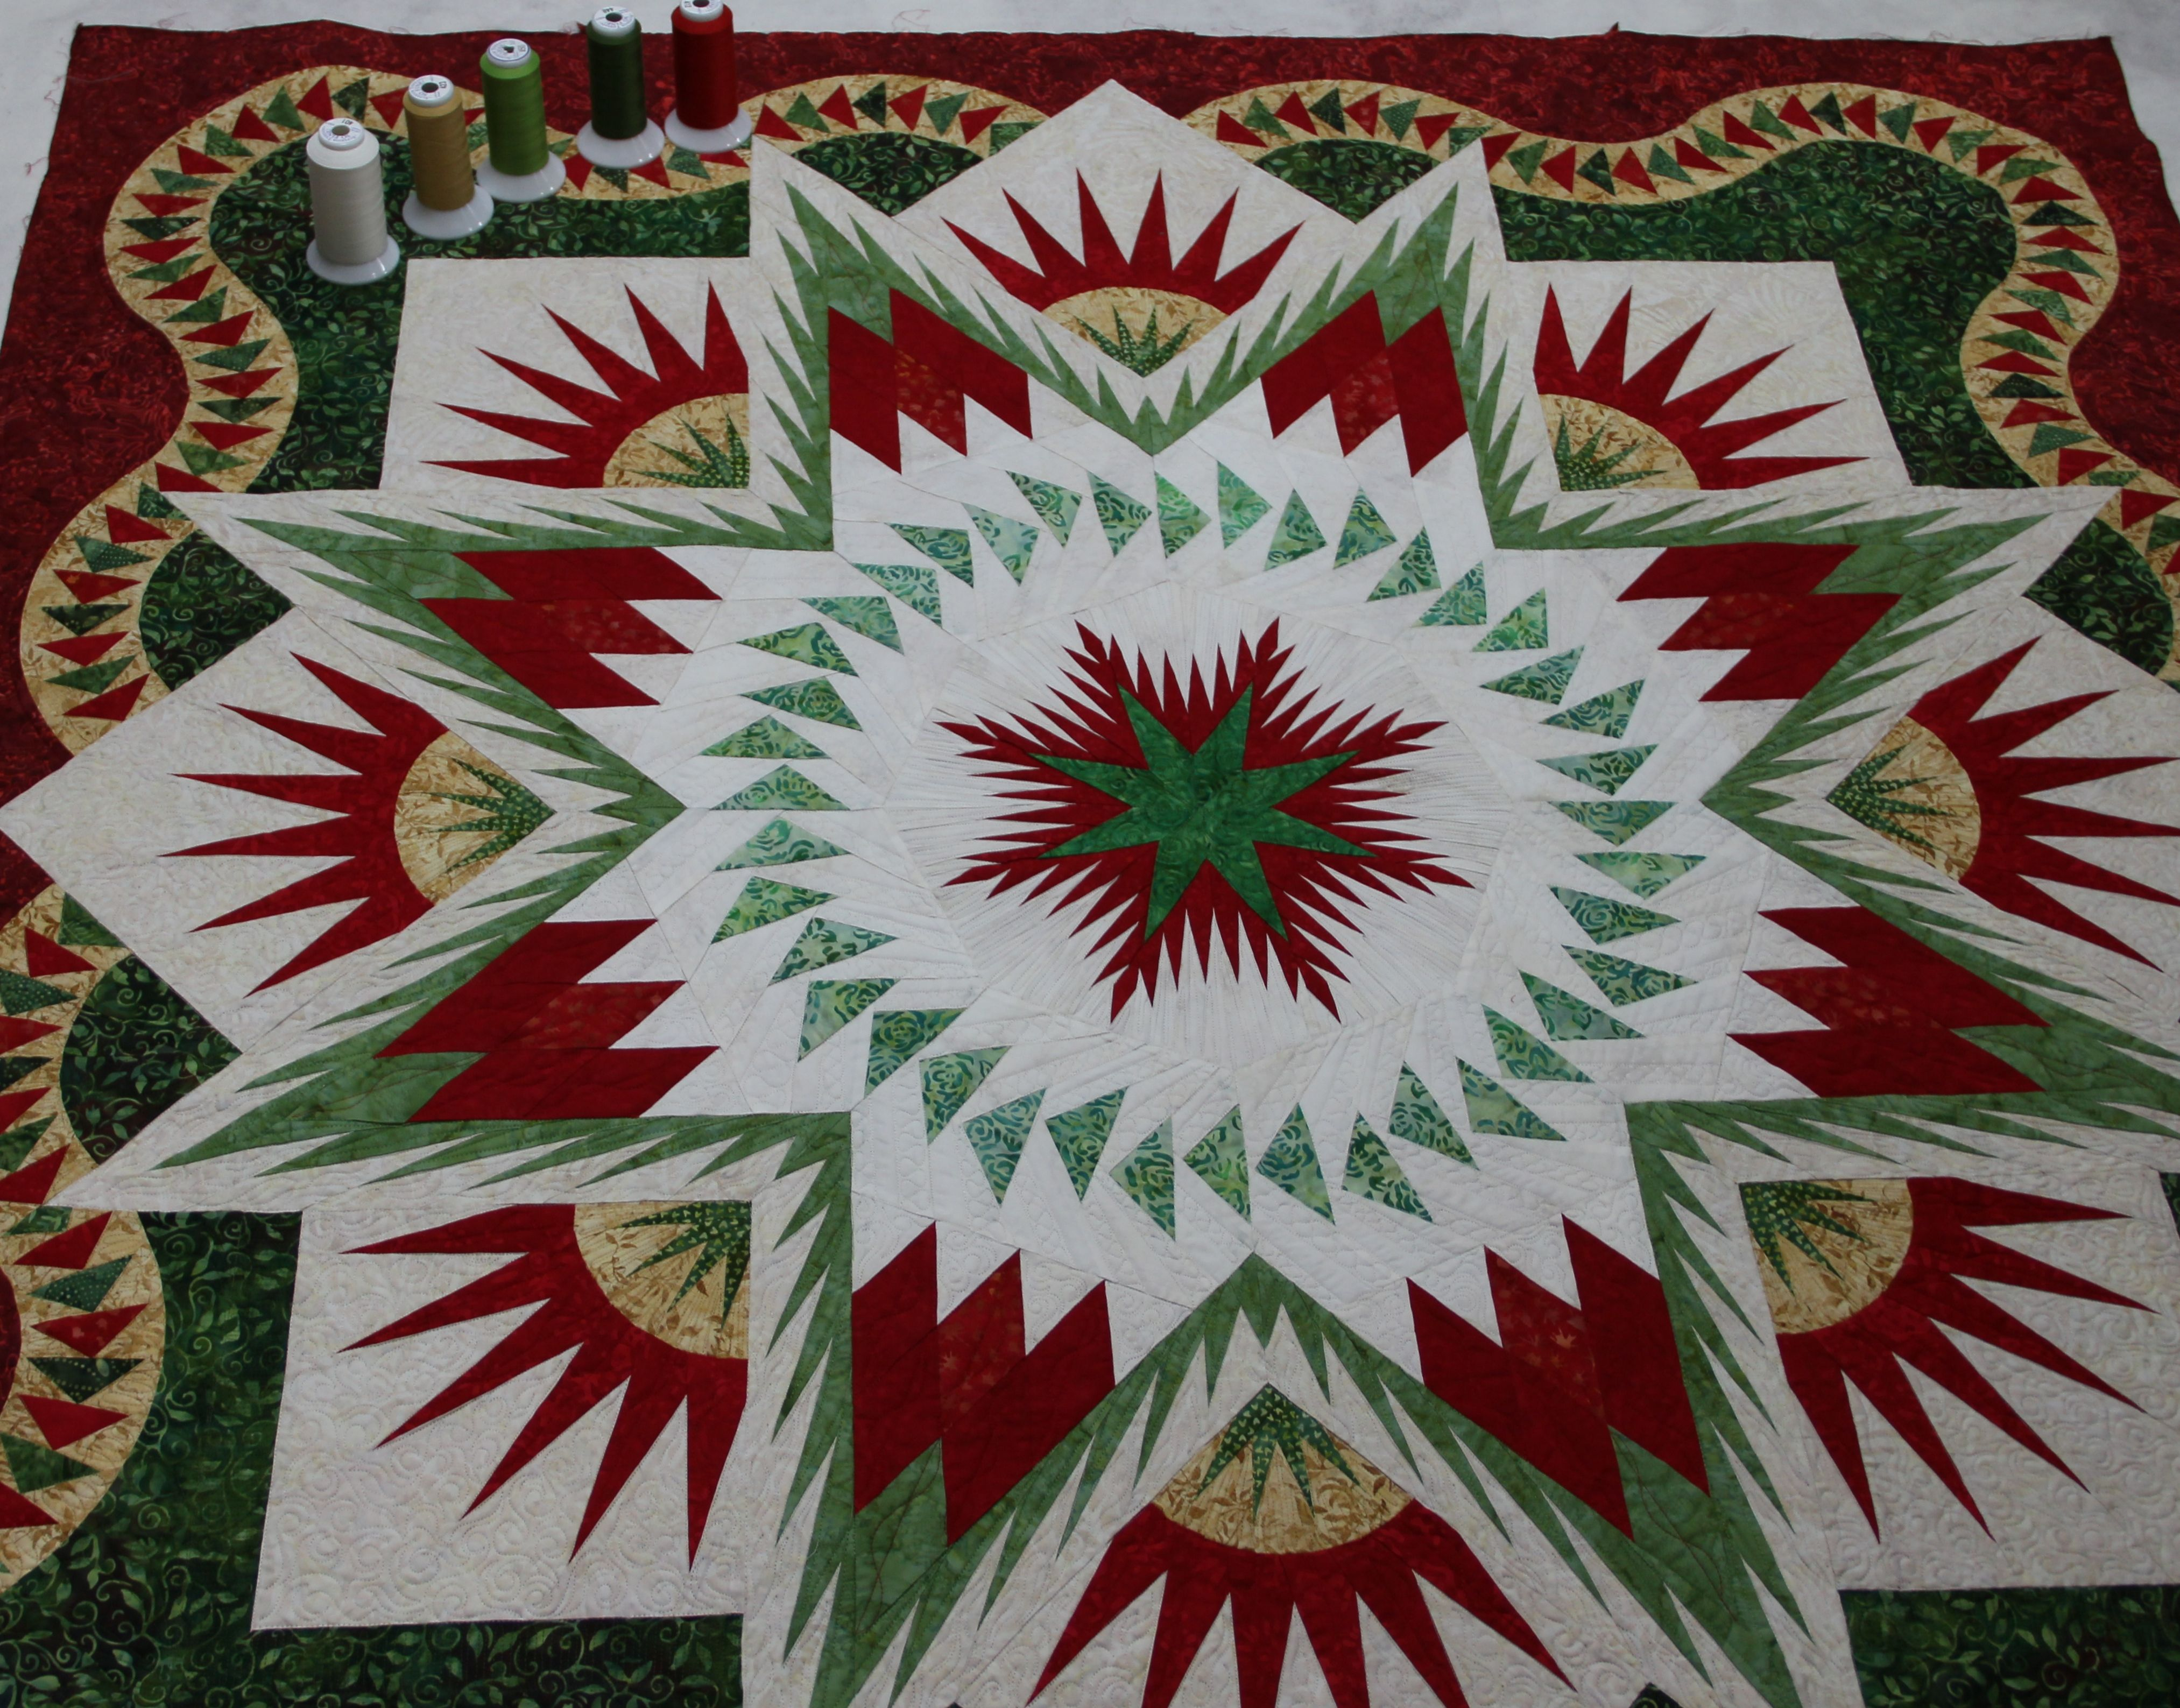 glacier star quilt - Google Search | Quilt - Awesome Paper Piecing ... : glacier quilts - Adamdwight.com